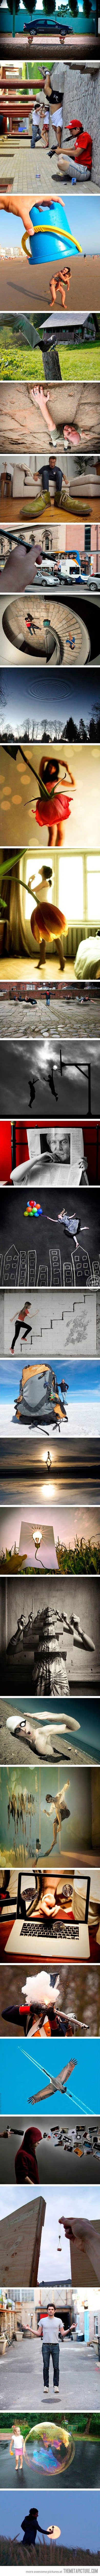 Creative perspective photography…